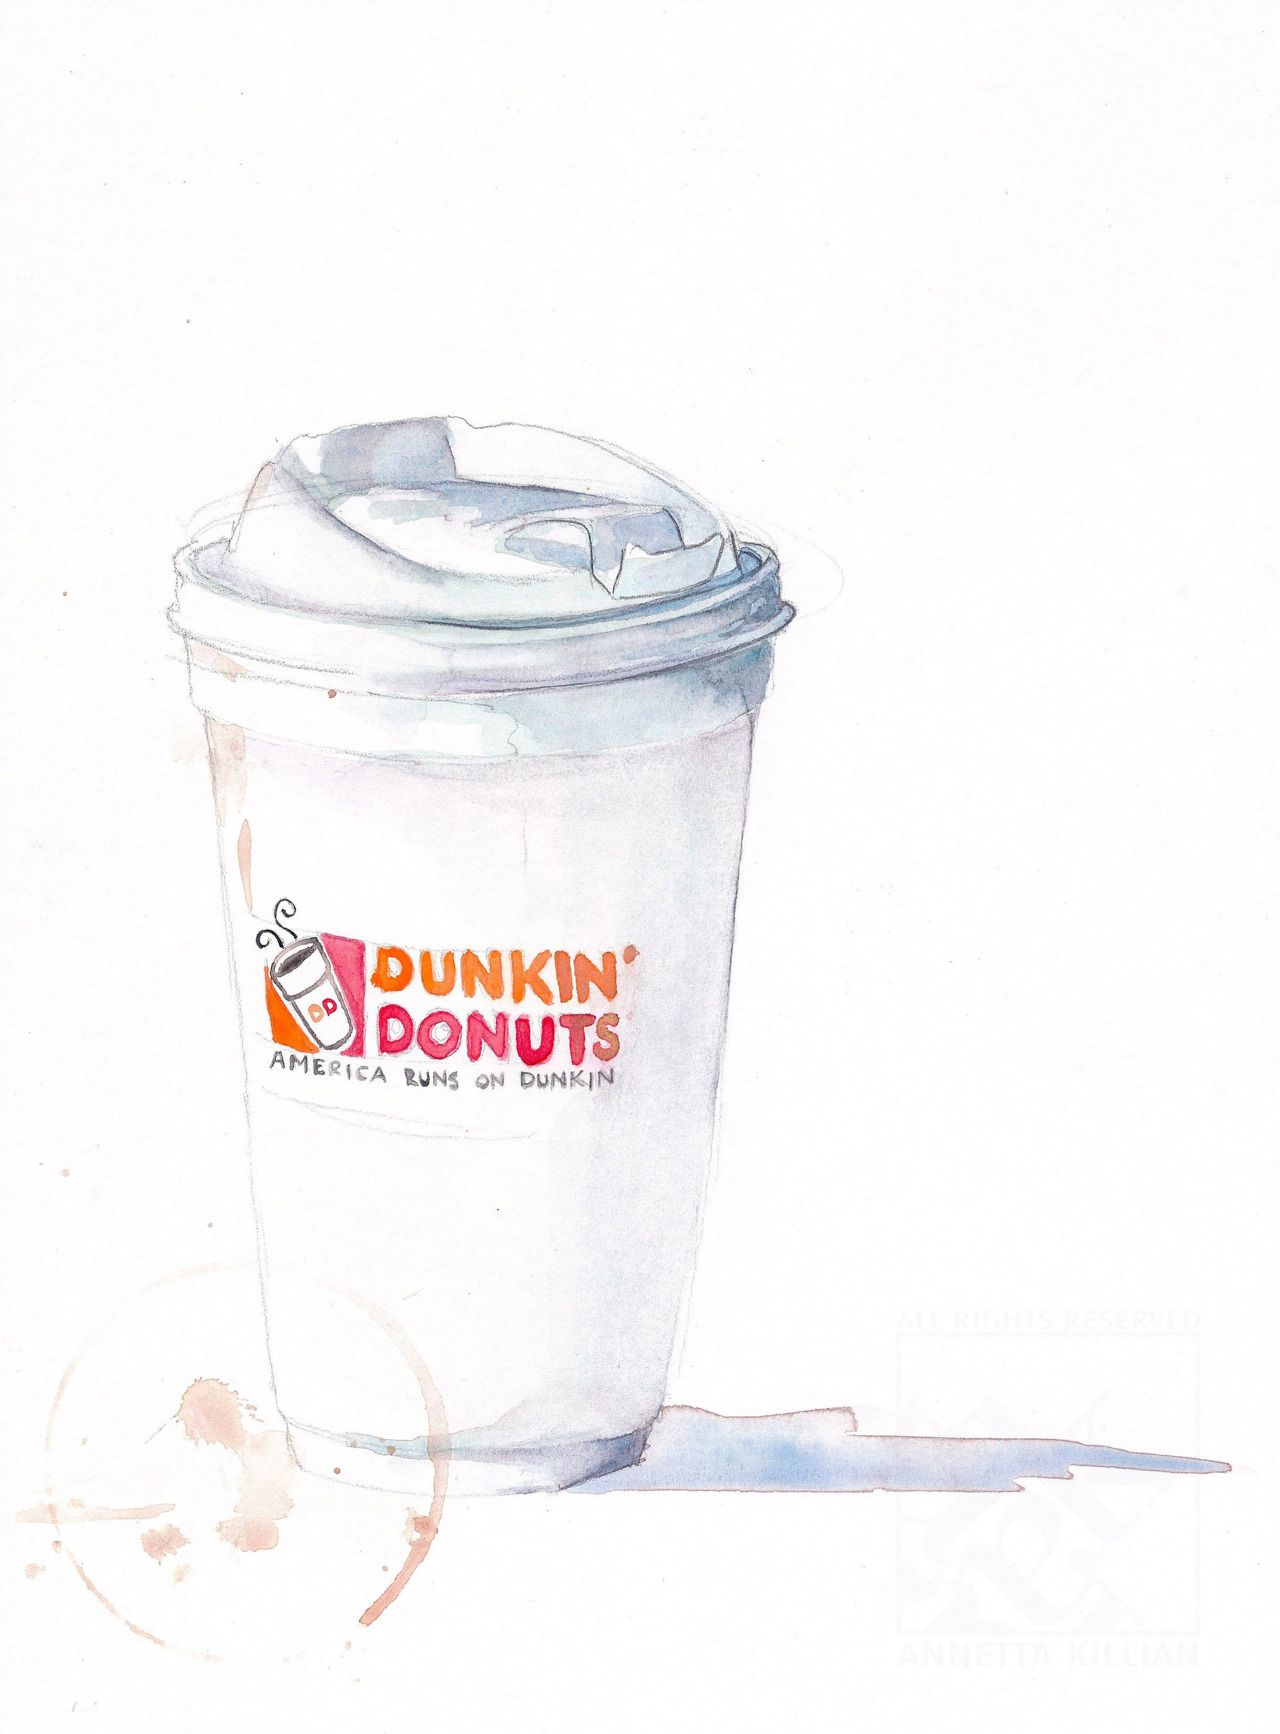 Pin By Arielle Spinner On Favorite Places And Spaces Coffee Doodle Dunkin Dunkin Donuts